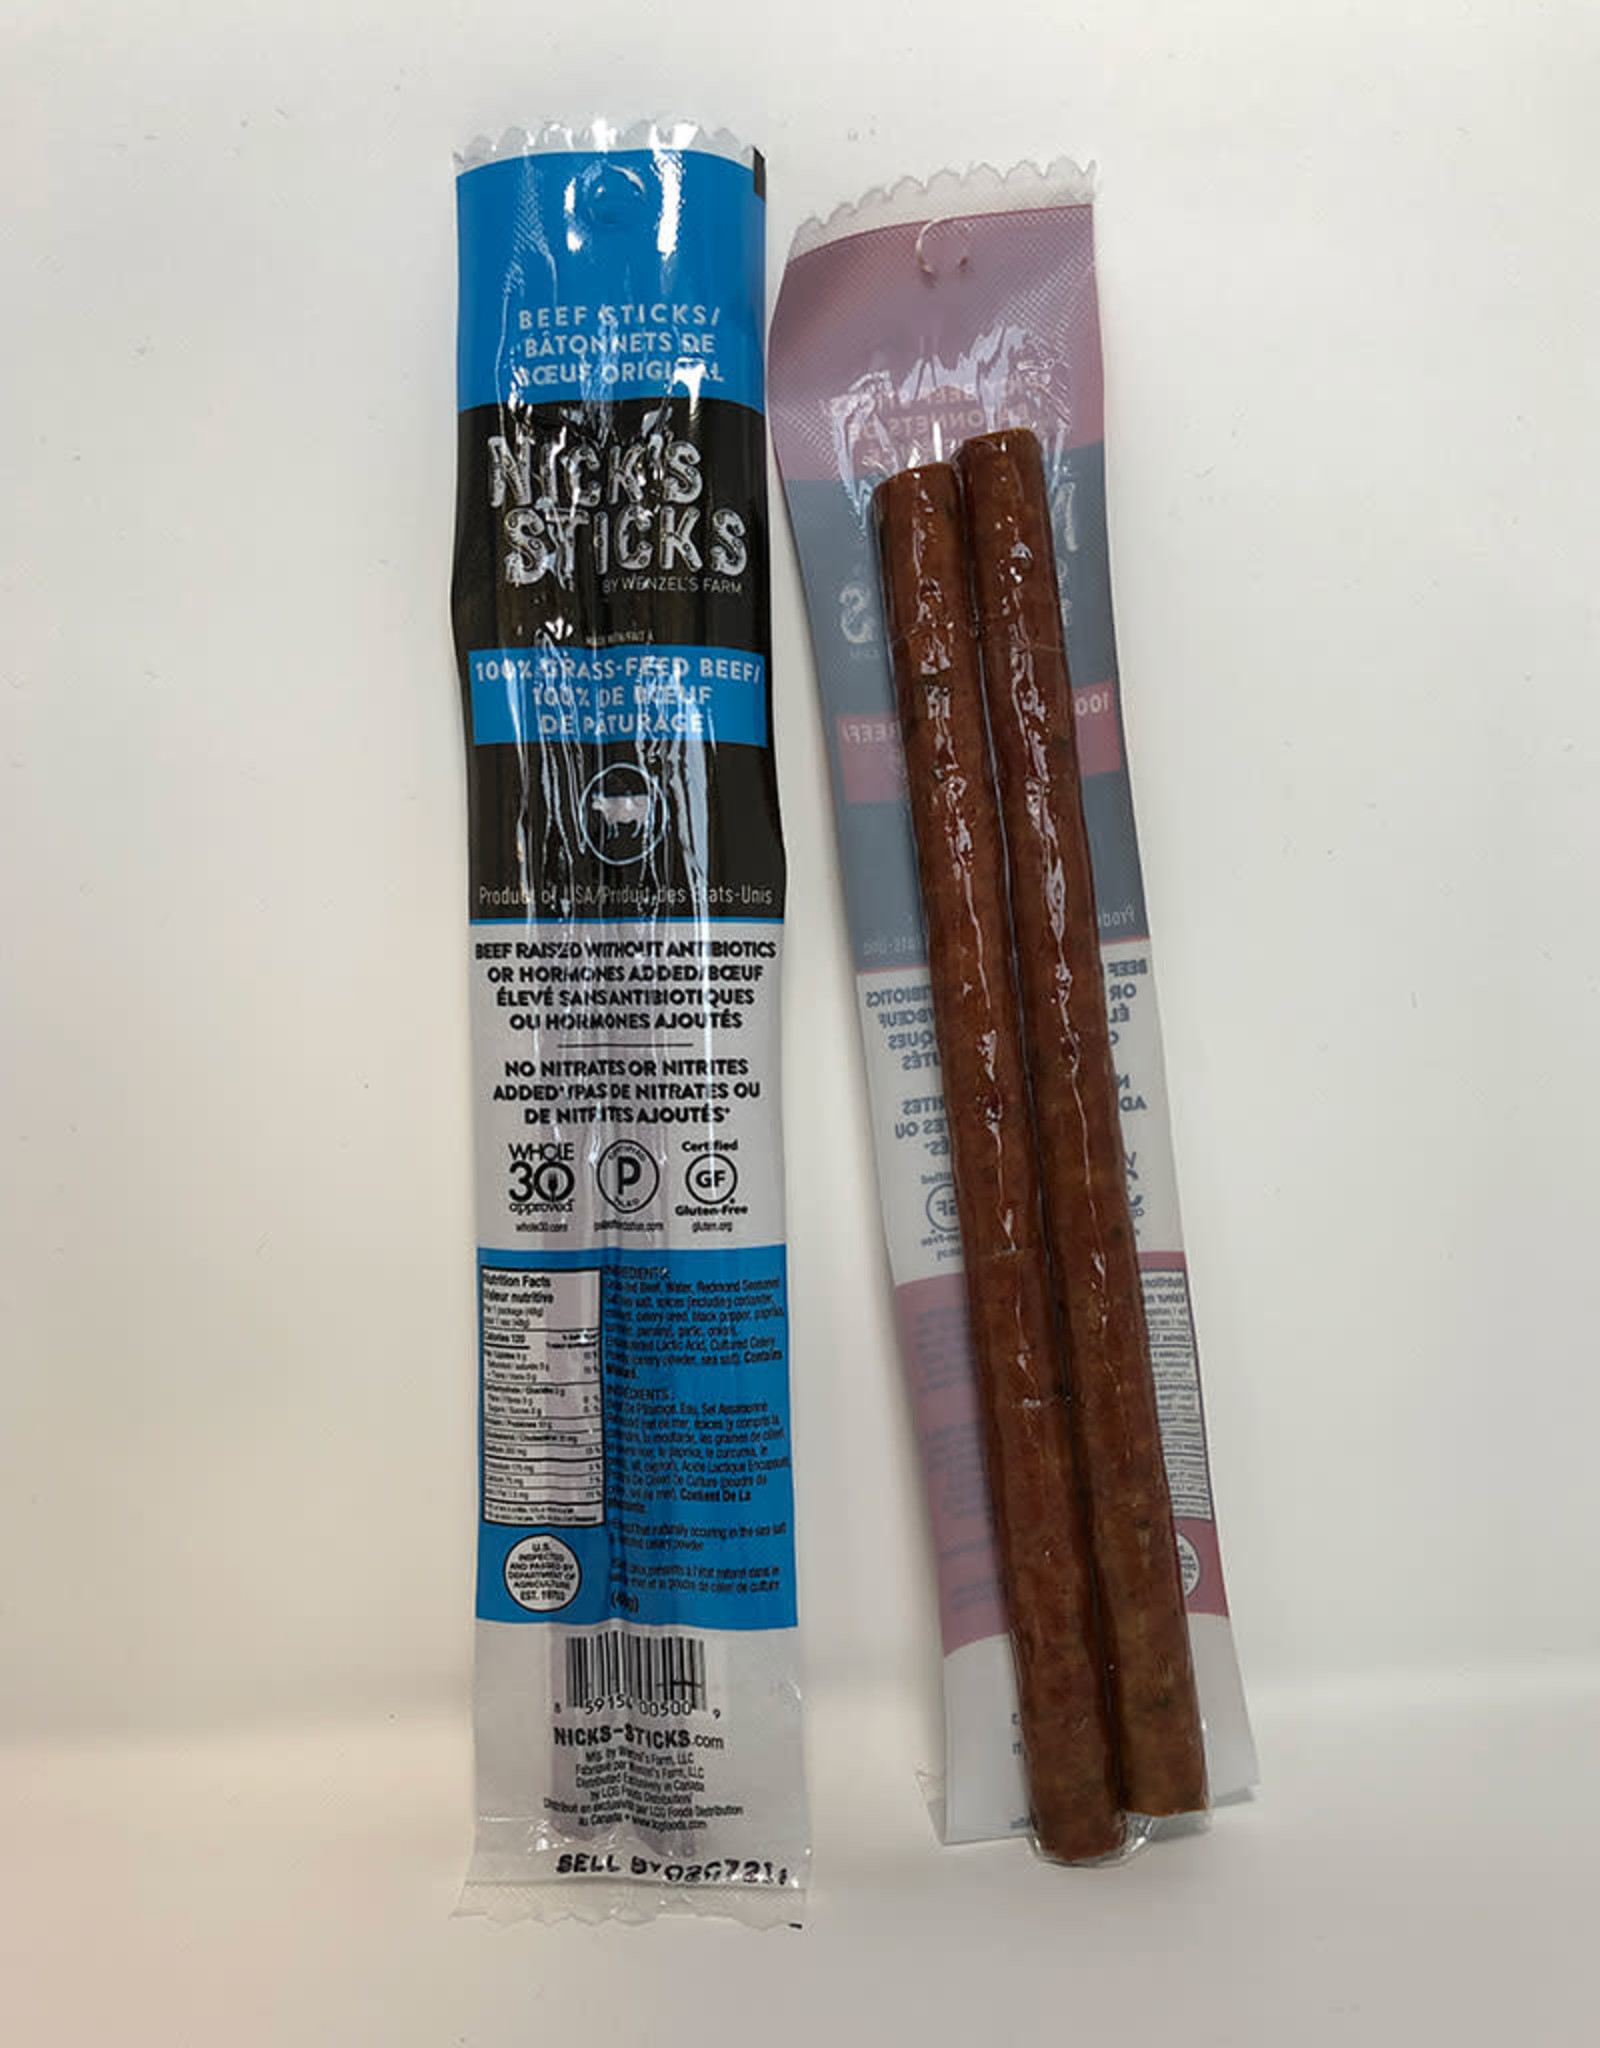 Nicks Sticks Nicks Sticks - Grass Fed Beef Snack Sticks, Original